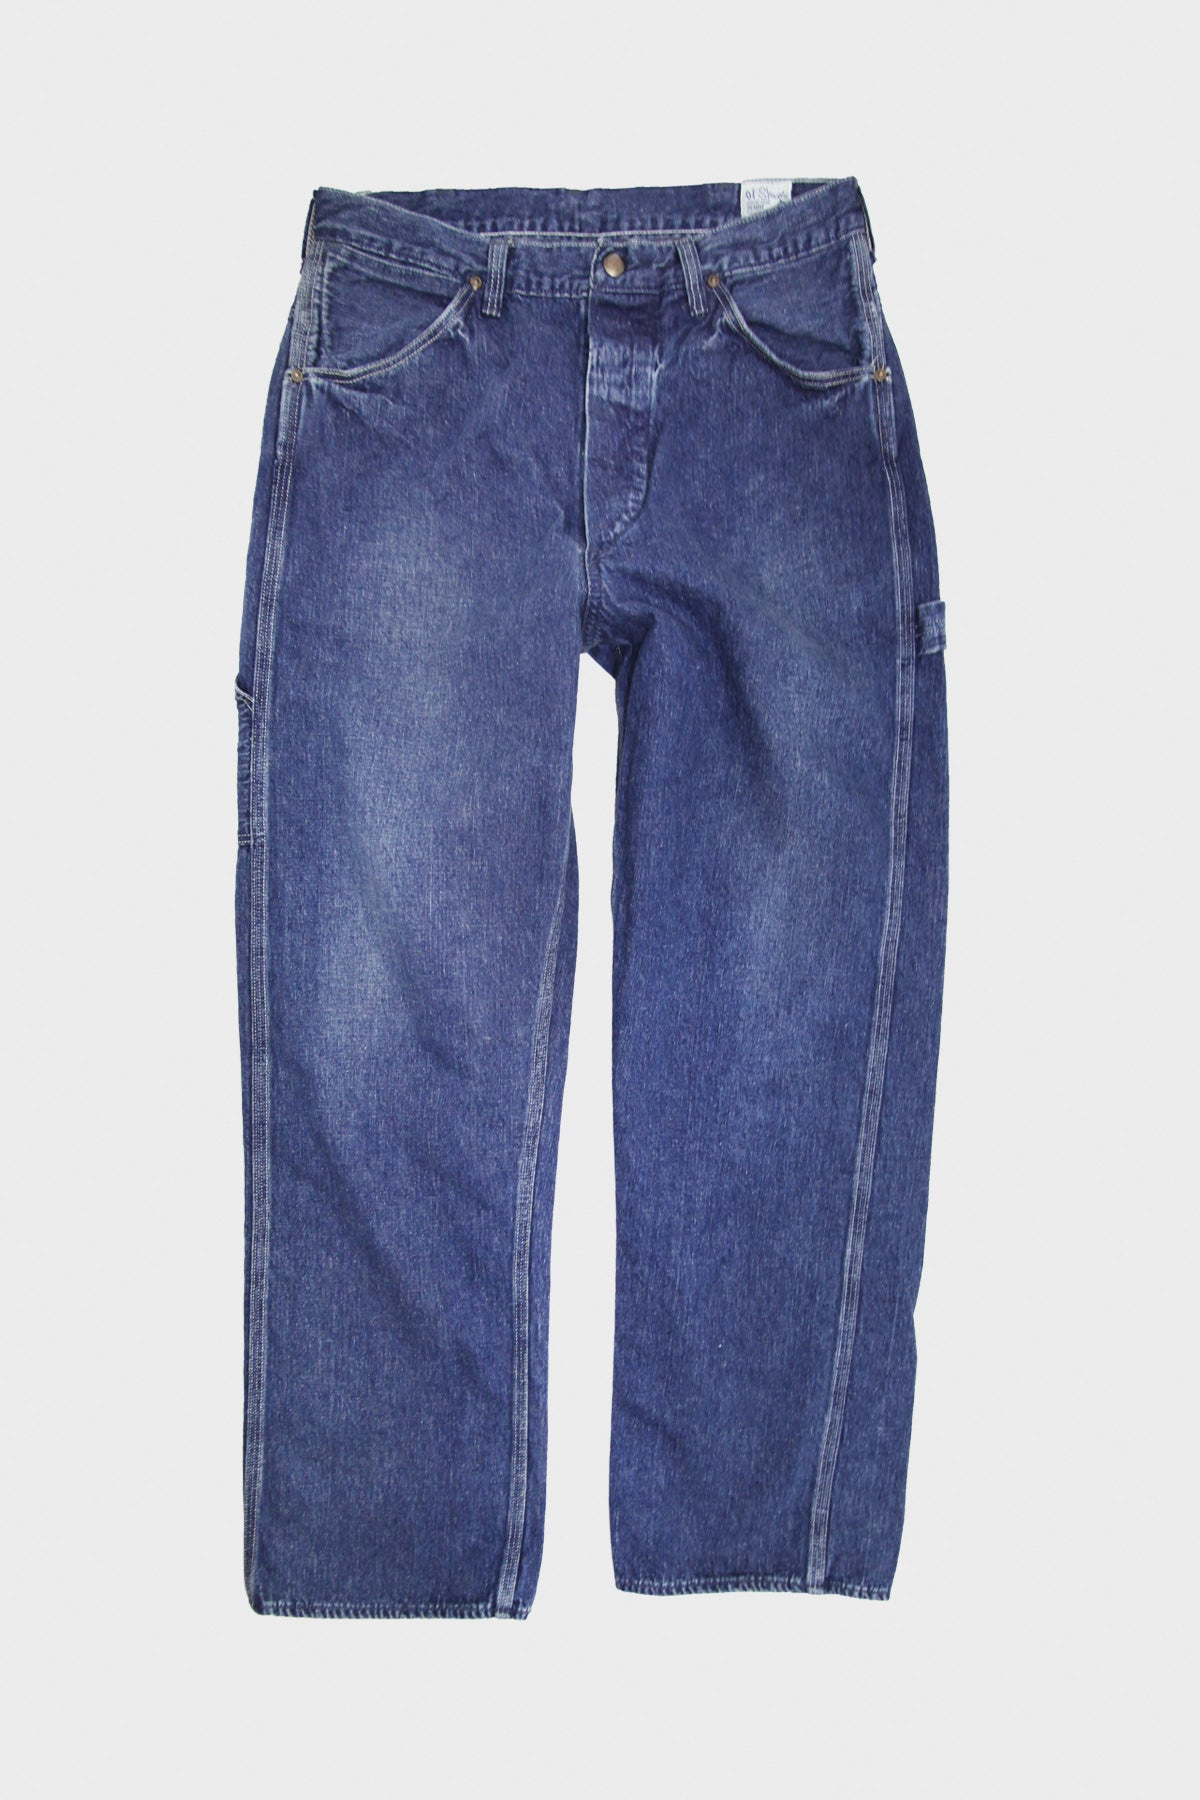 orSlow - Painter Pants - 2 Year Wash - Canoe Club